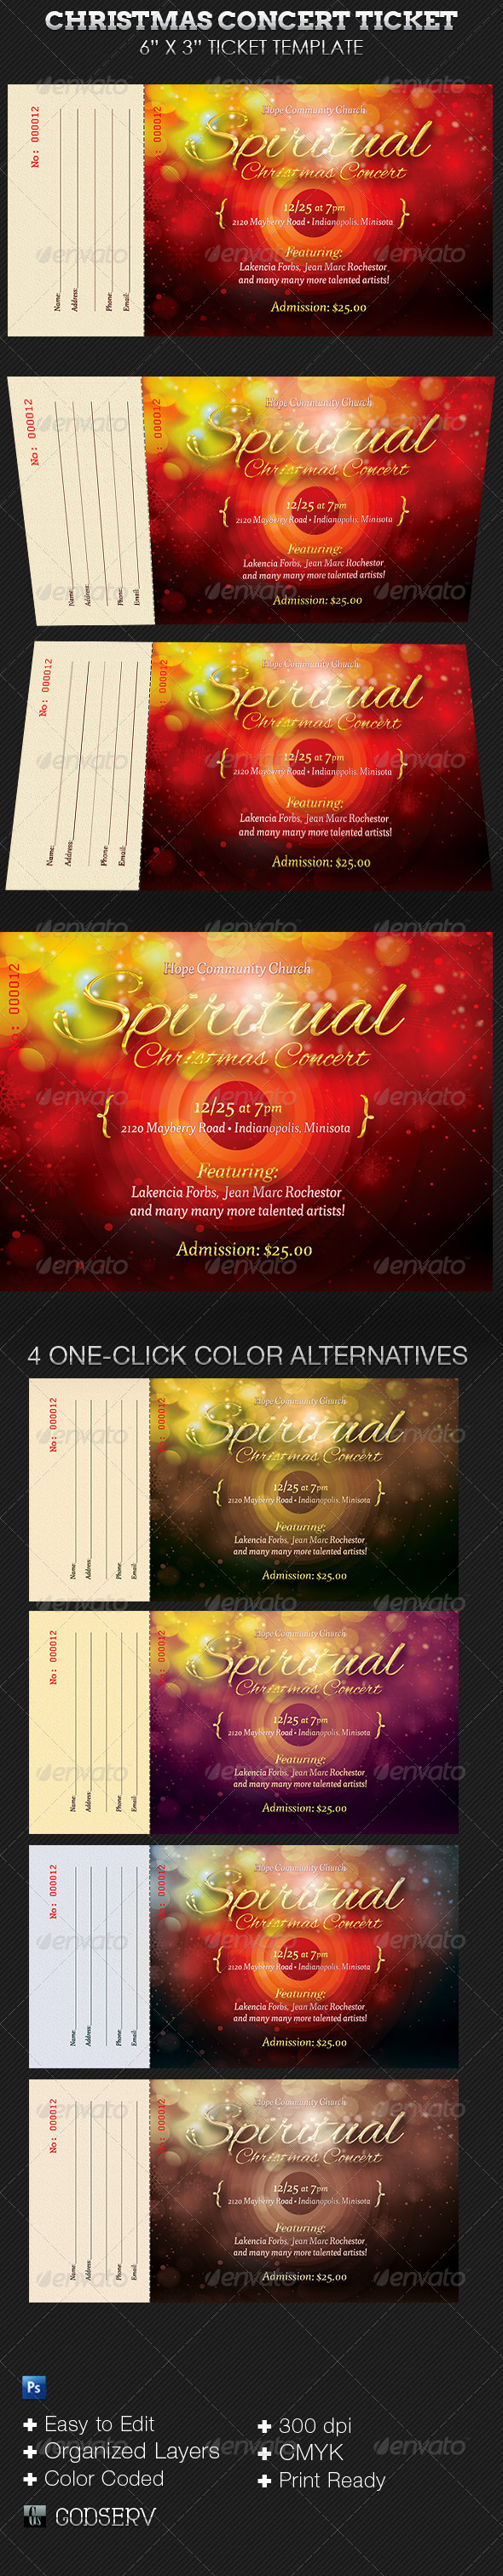 Spiritual Christmas Concert Ticket Template - Miscellaneous Print Templates